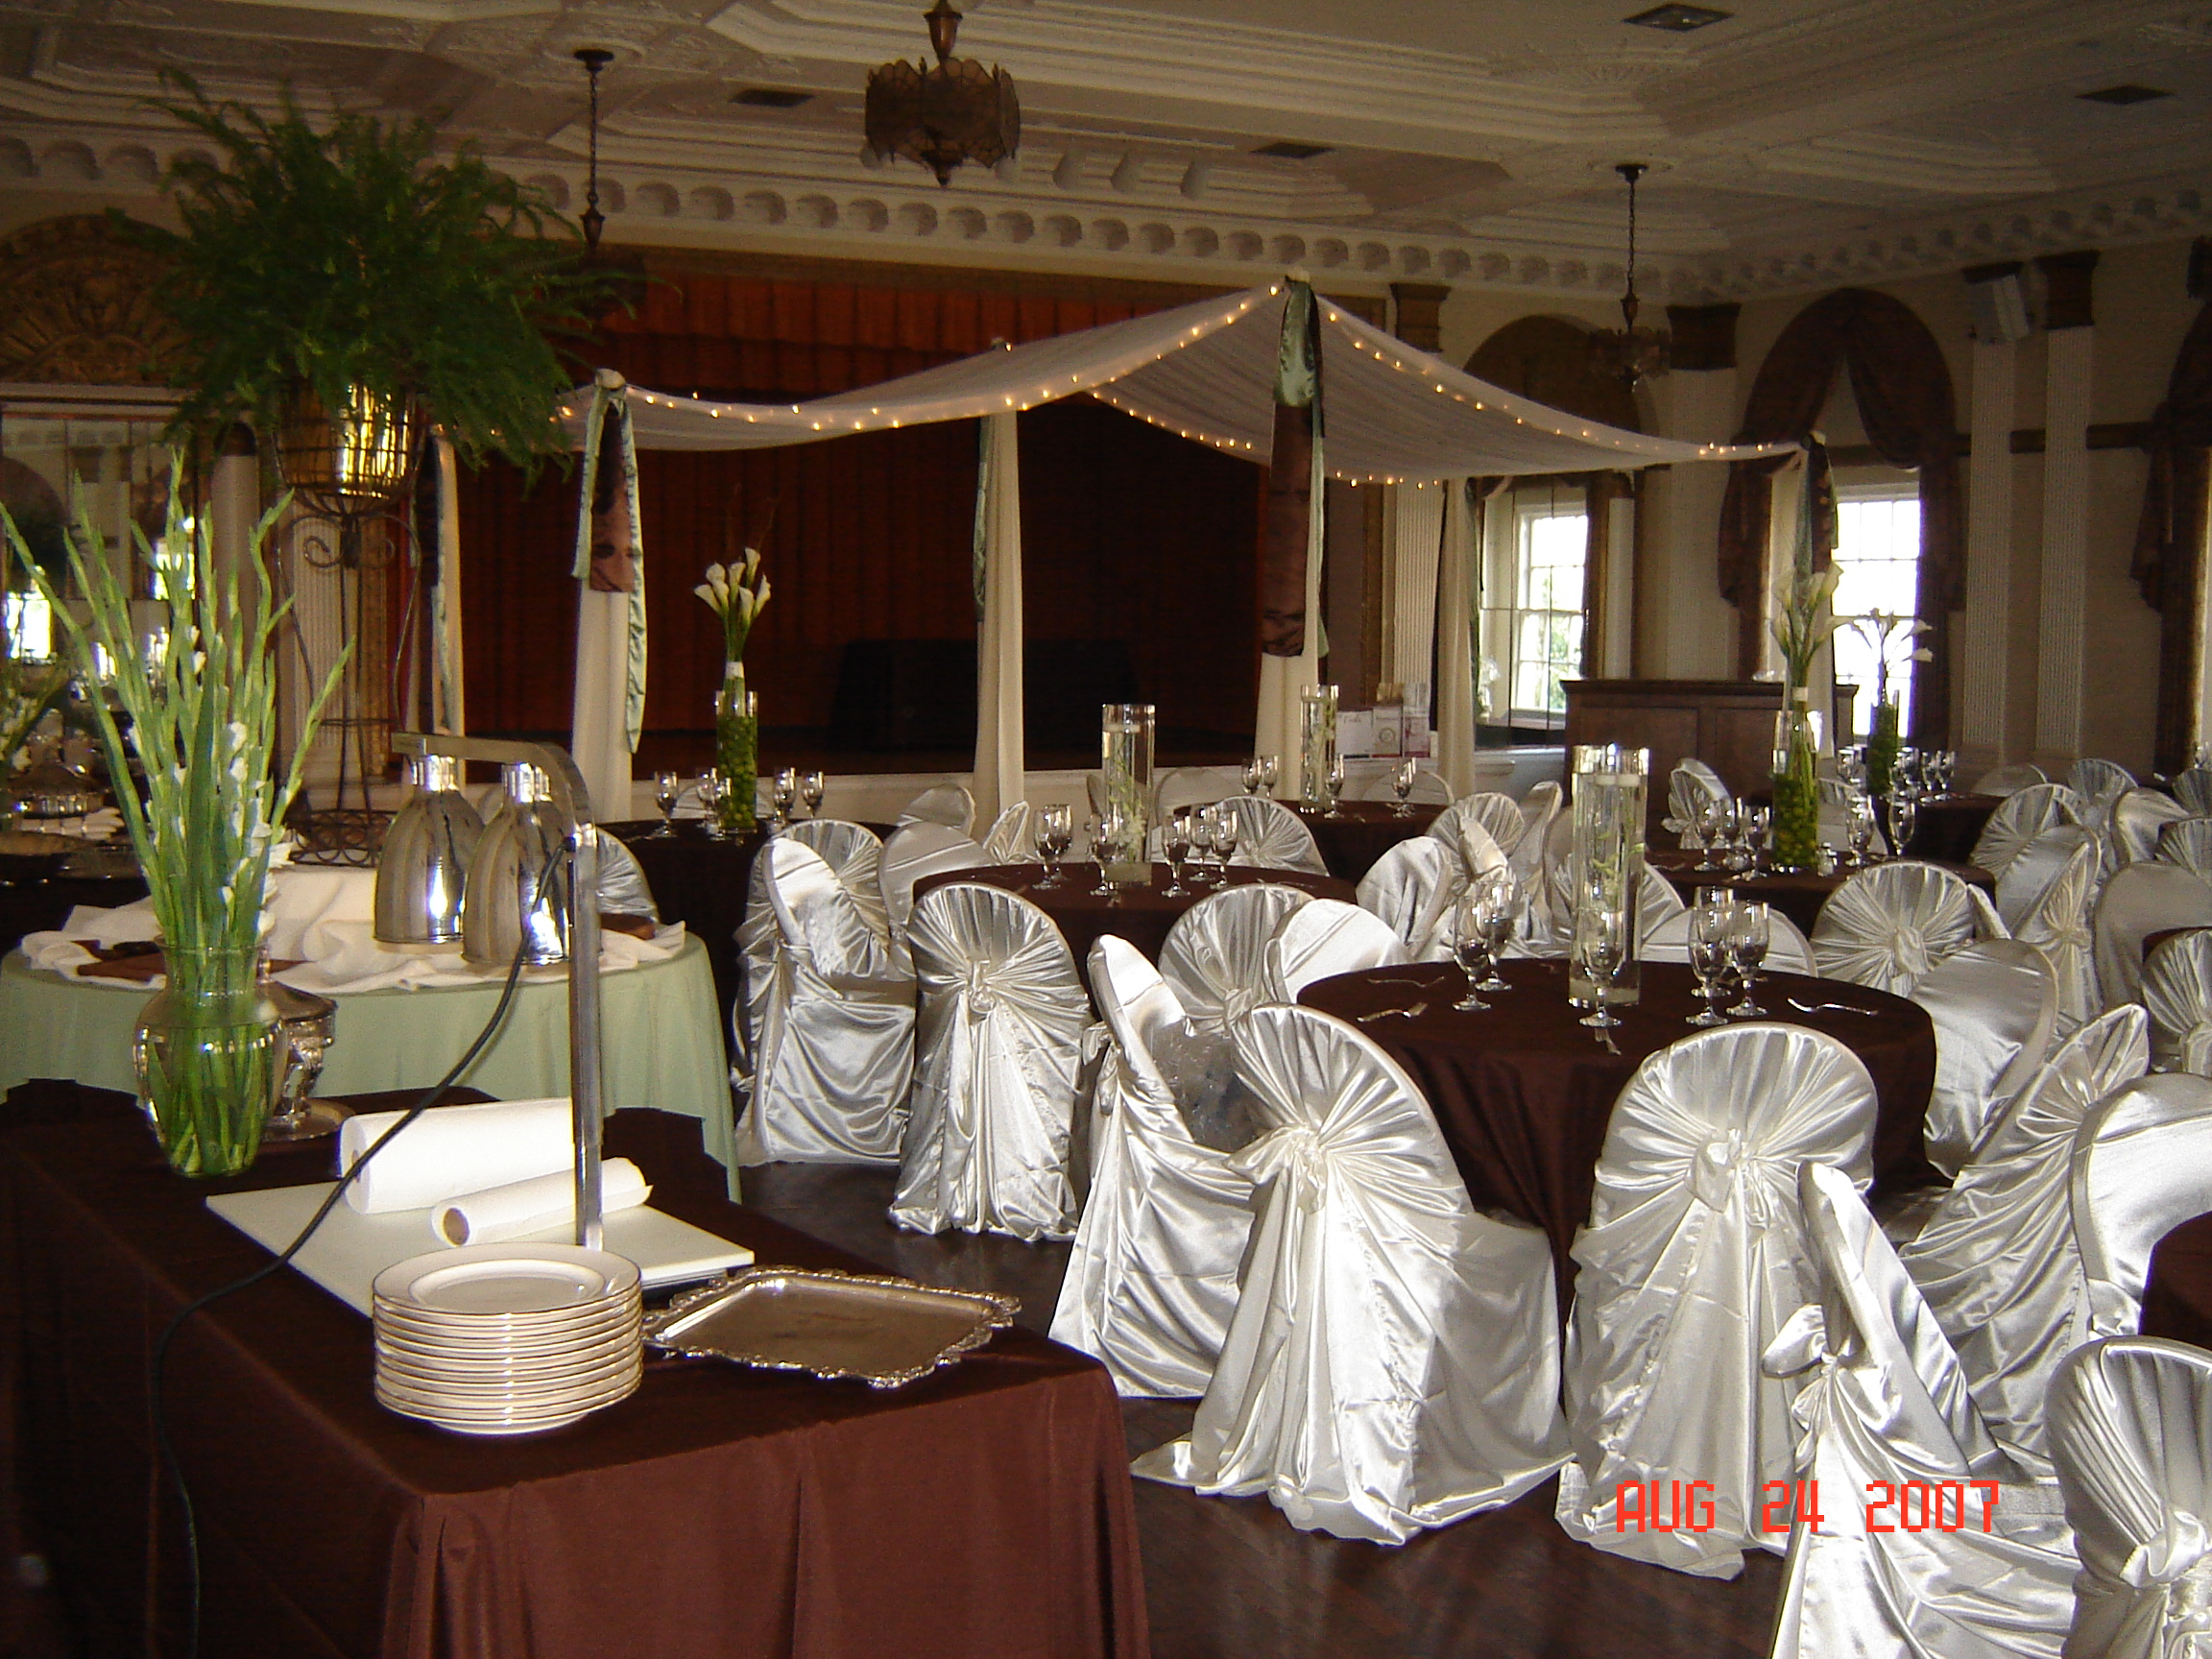 simply elegant chair covers and linens oversized chairs with ottomans weddings cover rentals wedding supplies fort worth texas tx